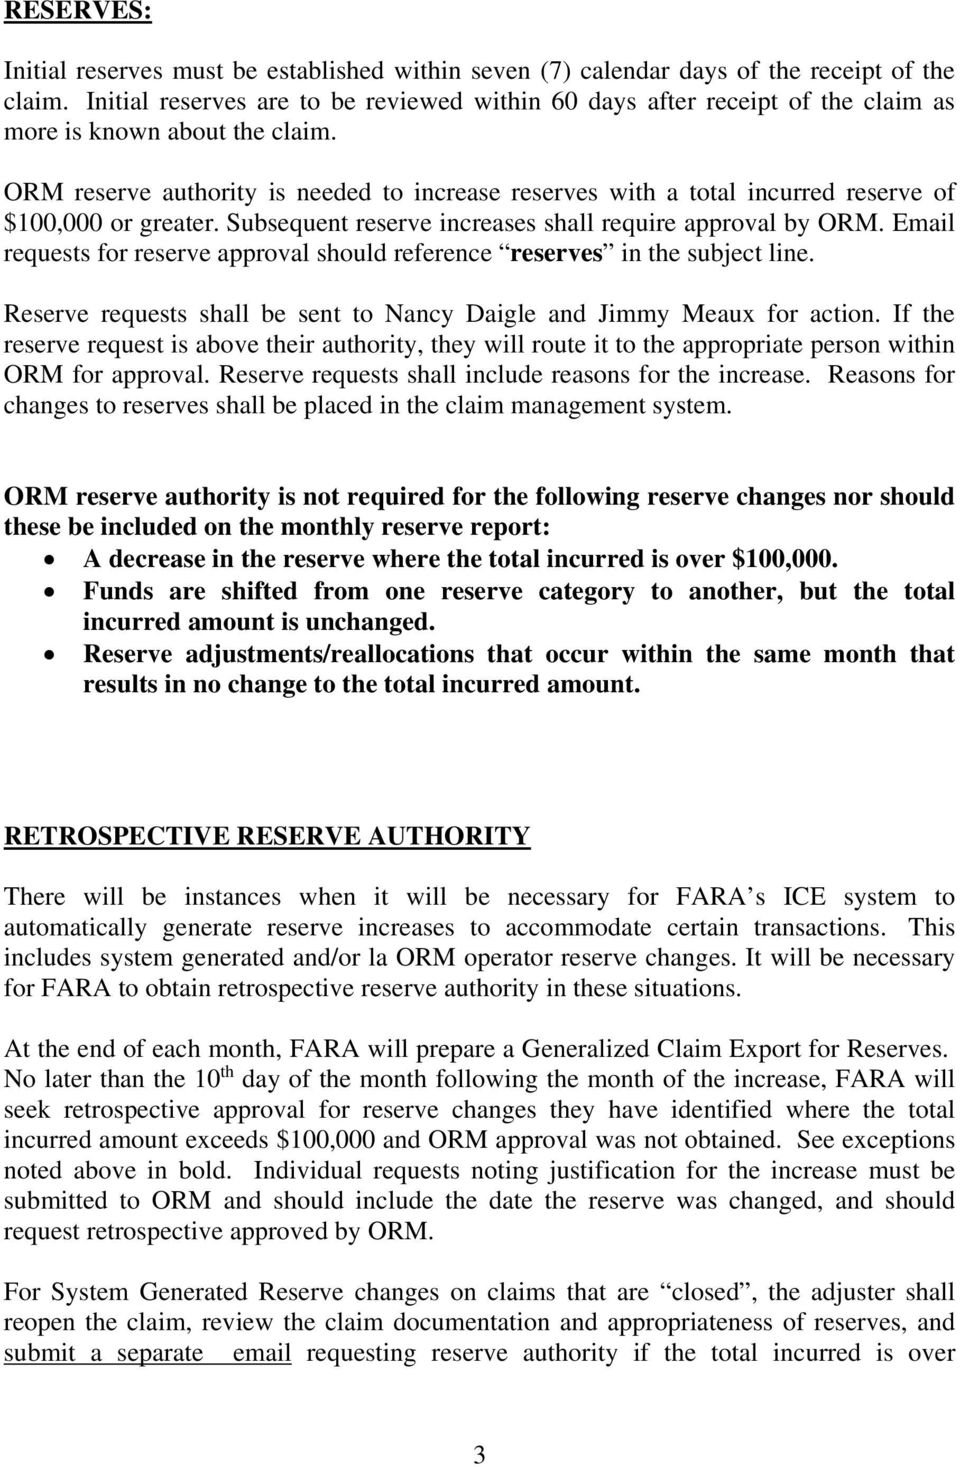 ORM reserve authority is needed to increase reserves with a total incurred reserve of $100,000 or greater. Subsequent reserve increases shall require approval by ORM.